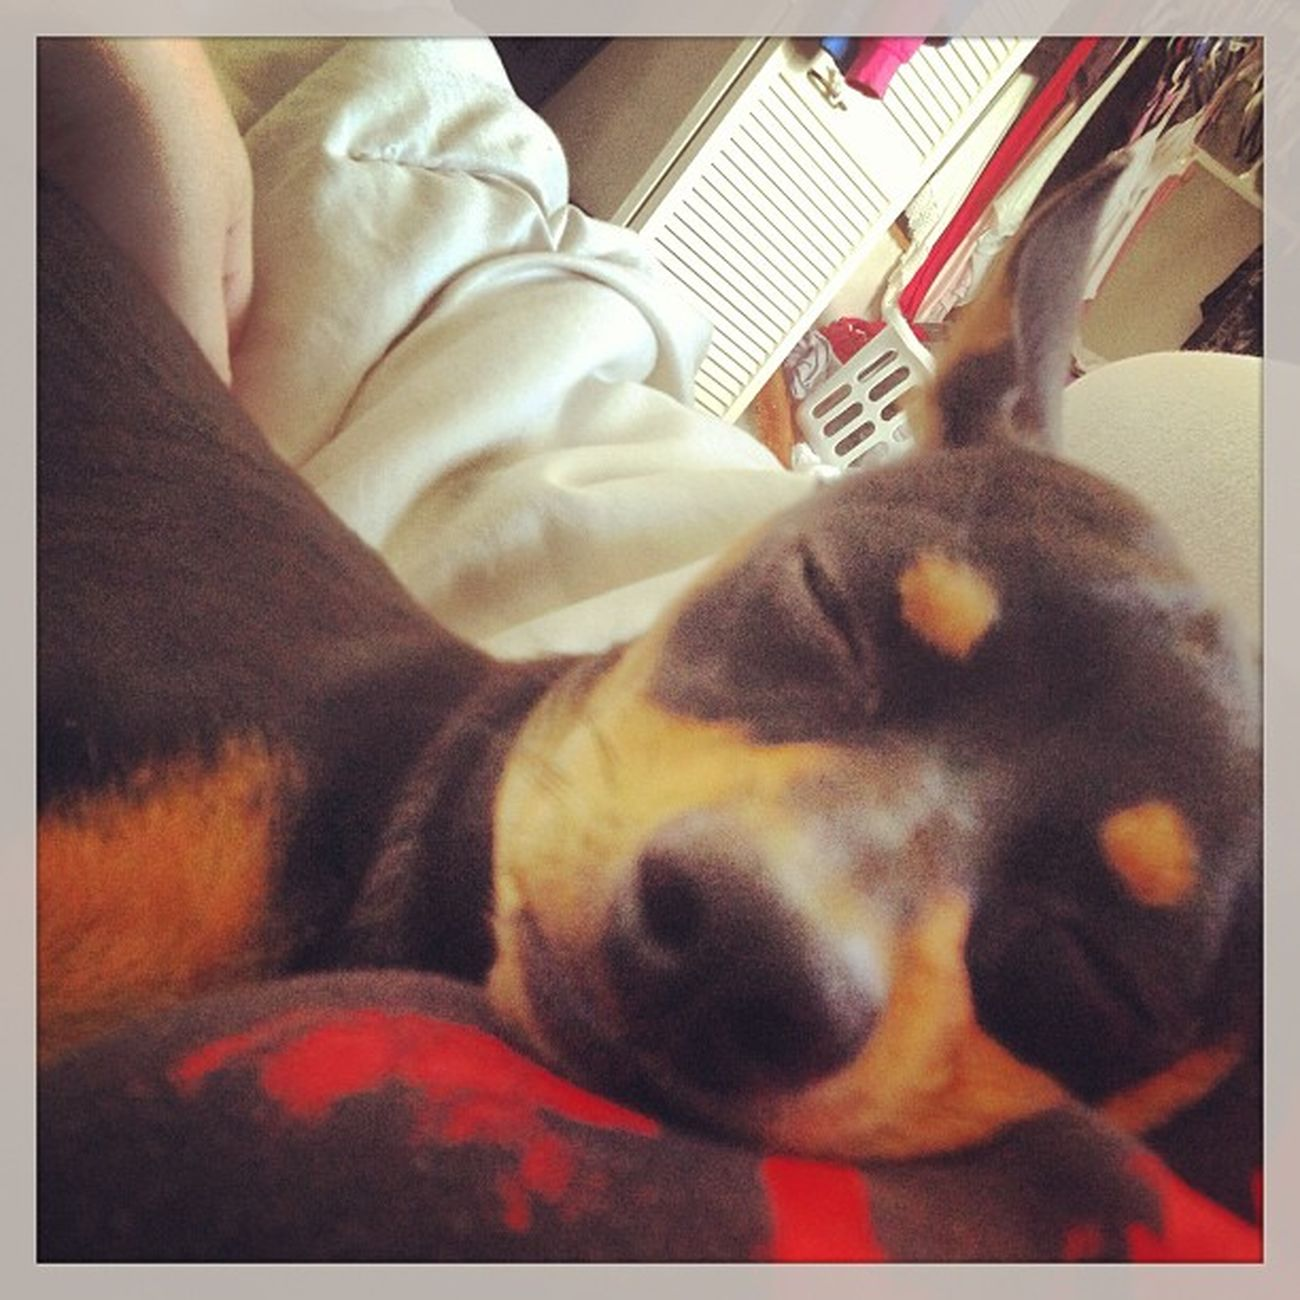 Cuddlin Cuddlemonster Cuddlebuddy Boobcuddlin squishface hunter chihuahua minpin terriermix sleepyhead mommynbaby